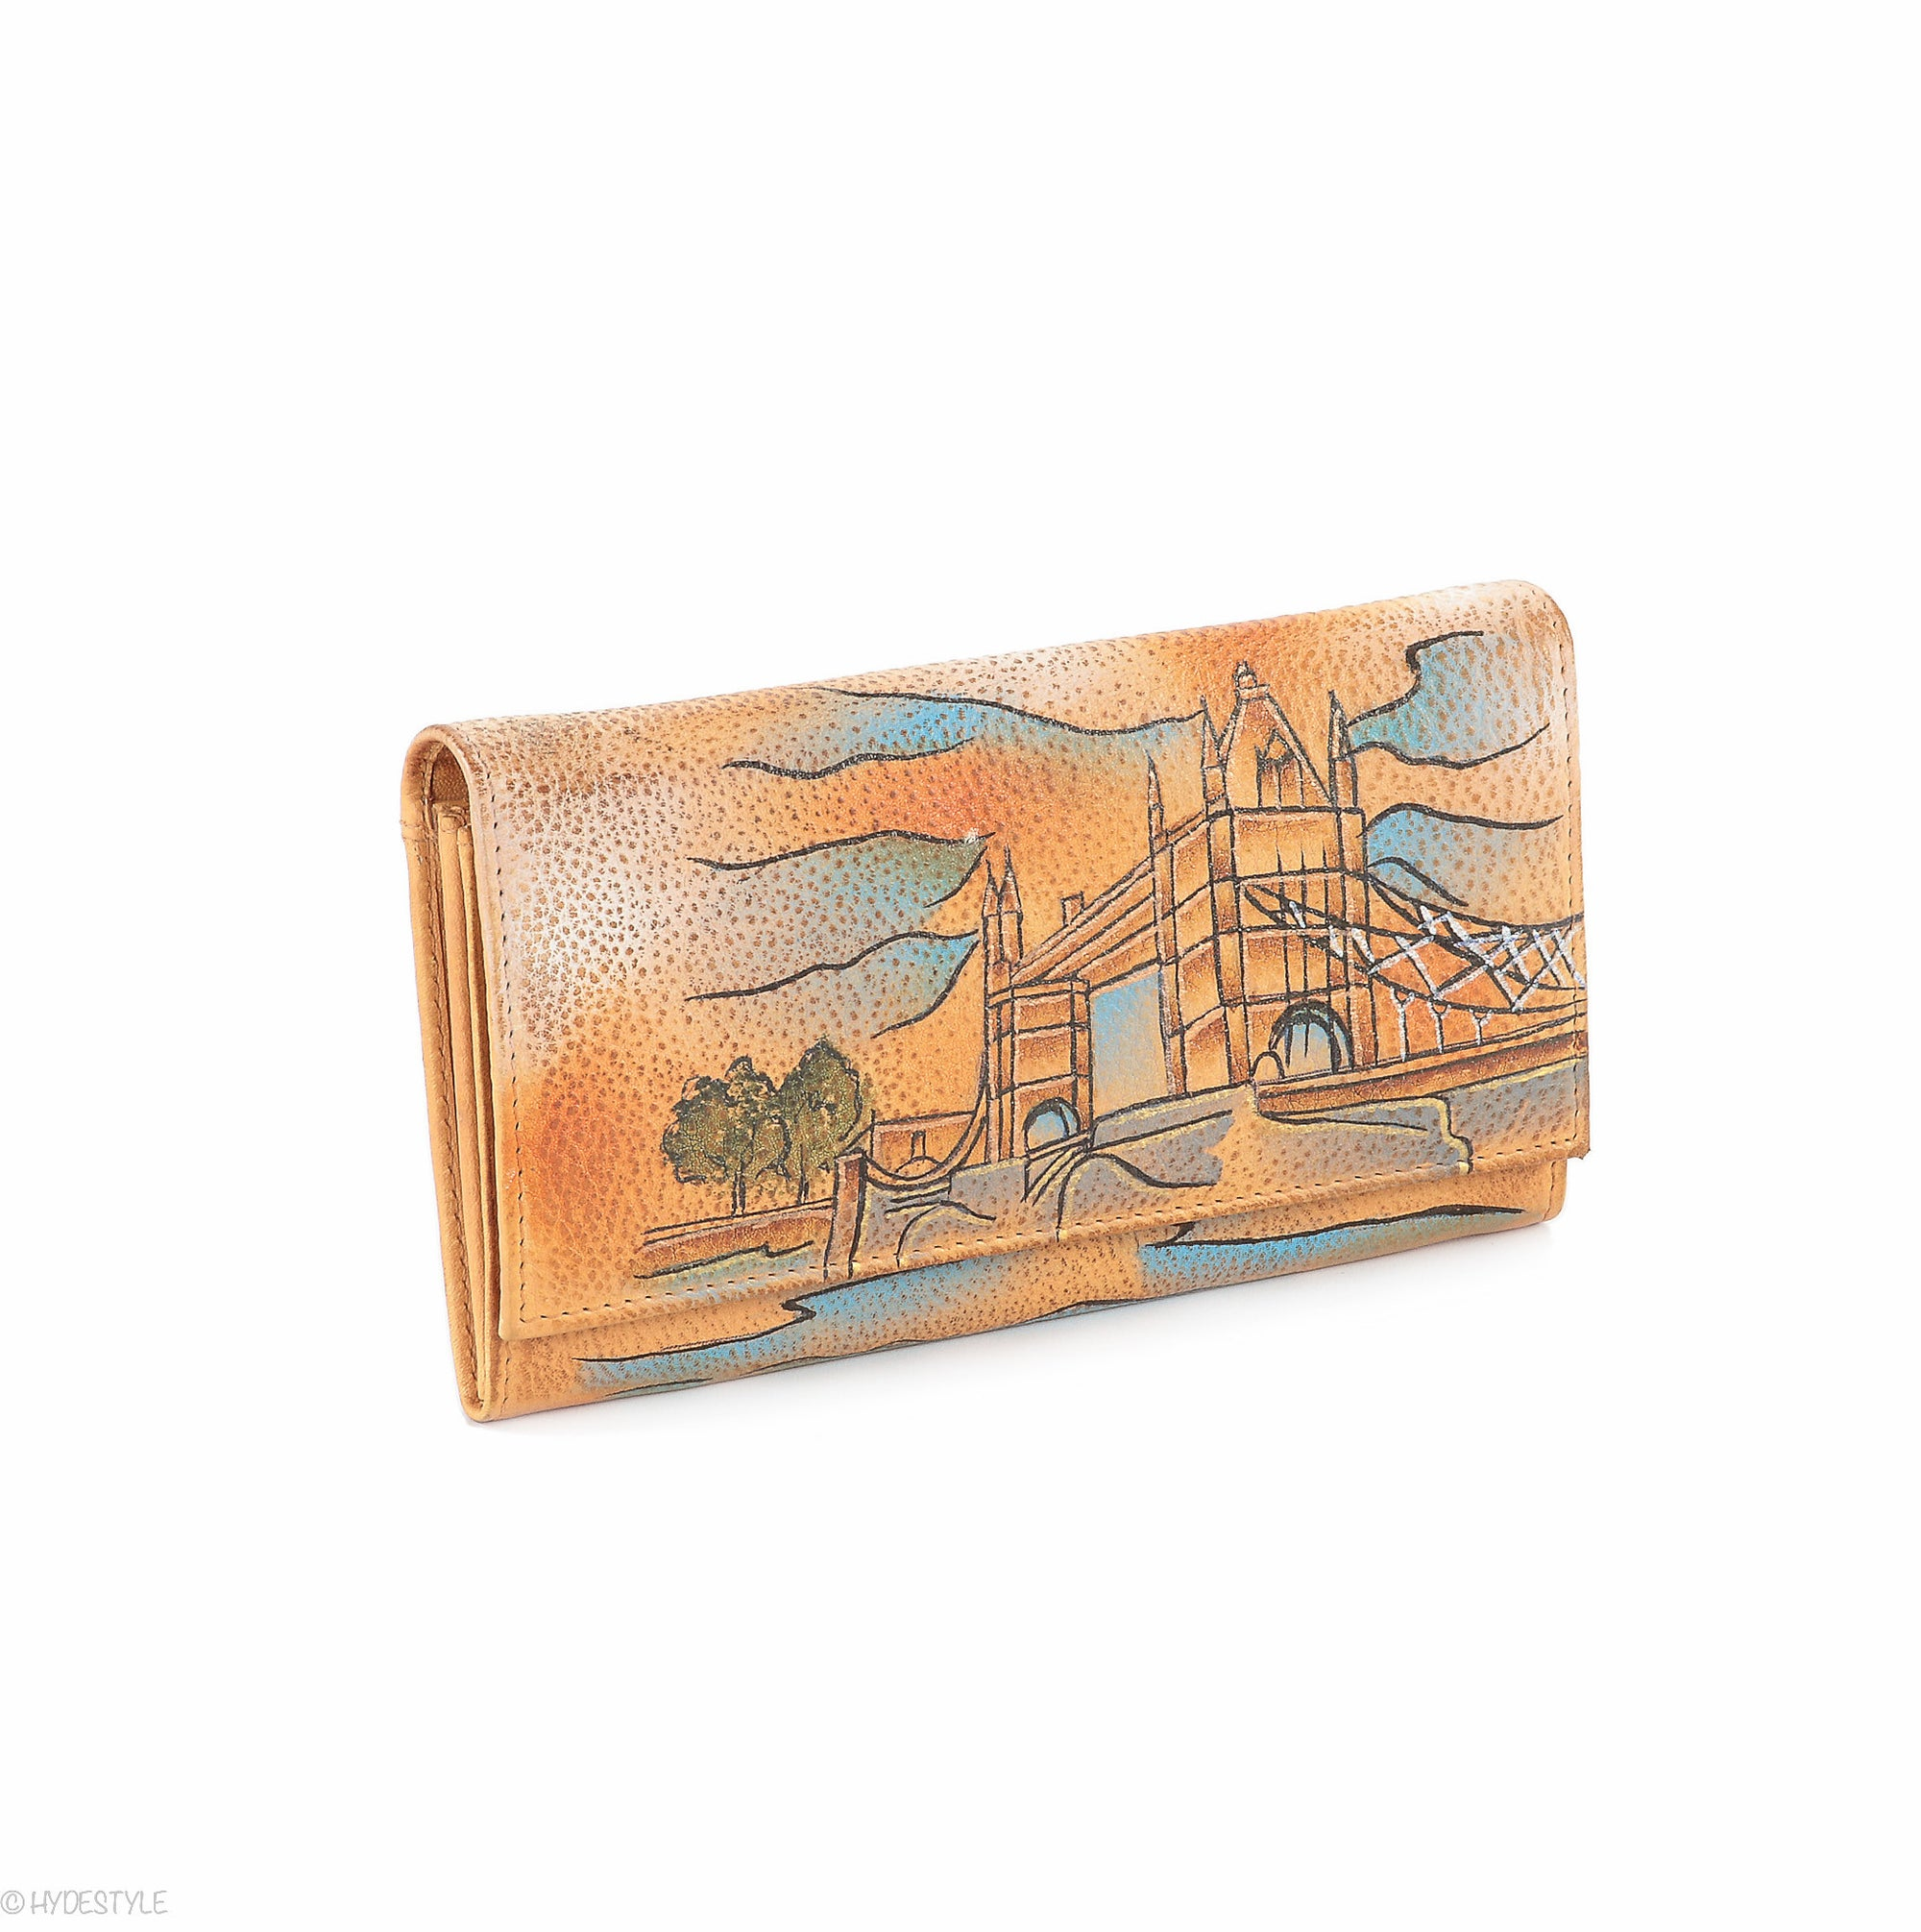 Picta Manu hand painted leather ladies purse #LW11 Tower Bridge